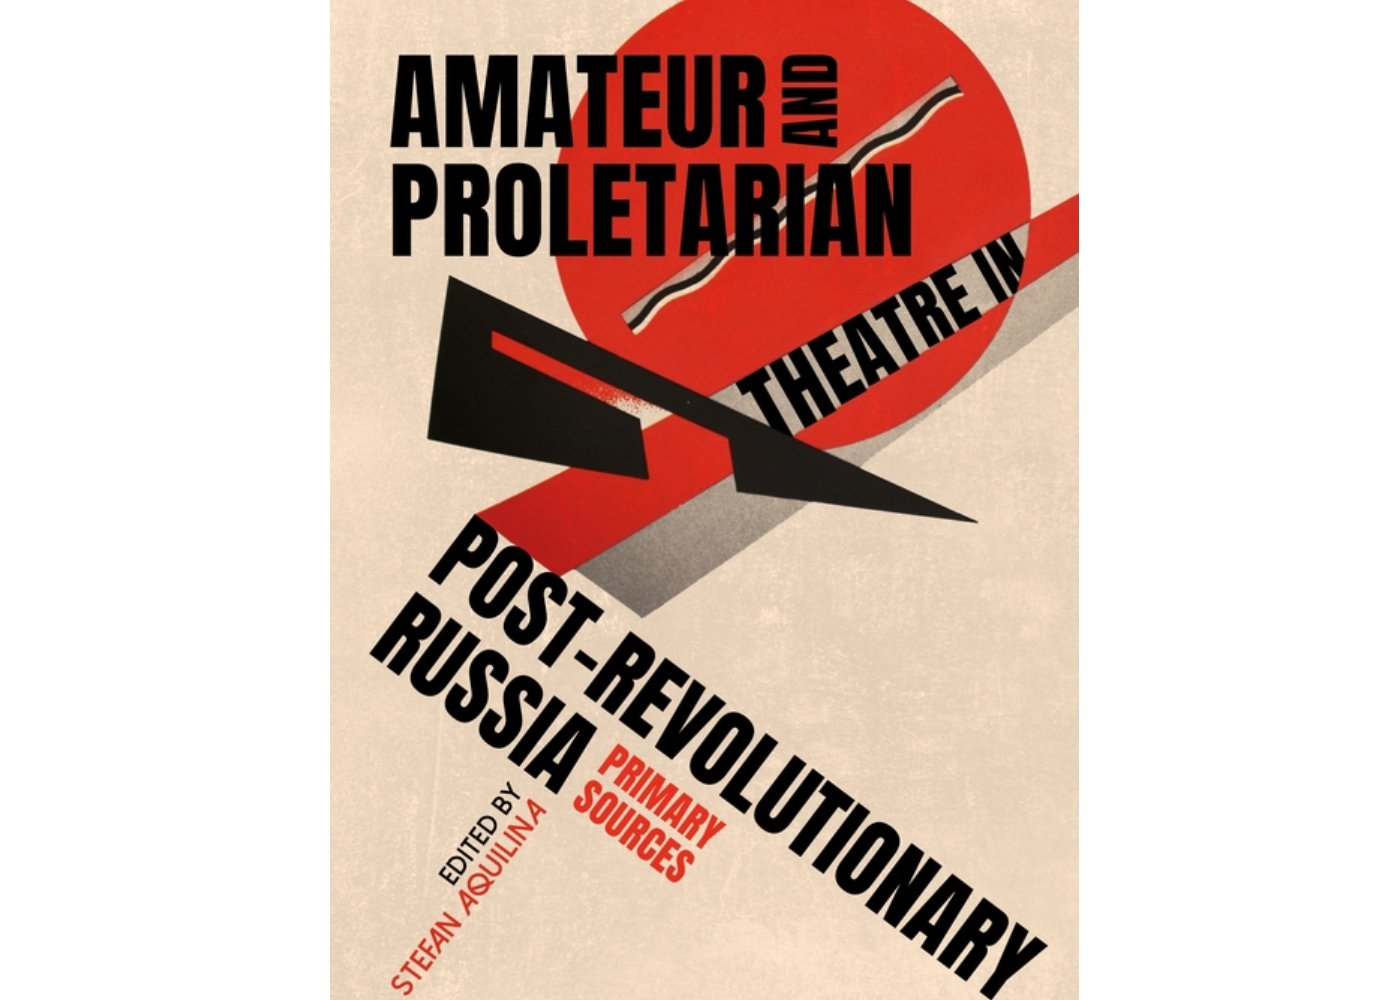 Amateur and Proletarian Theatre in Post-Revolutionary Russia | Calvert Reads